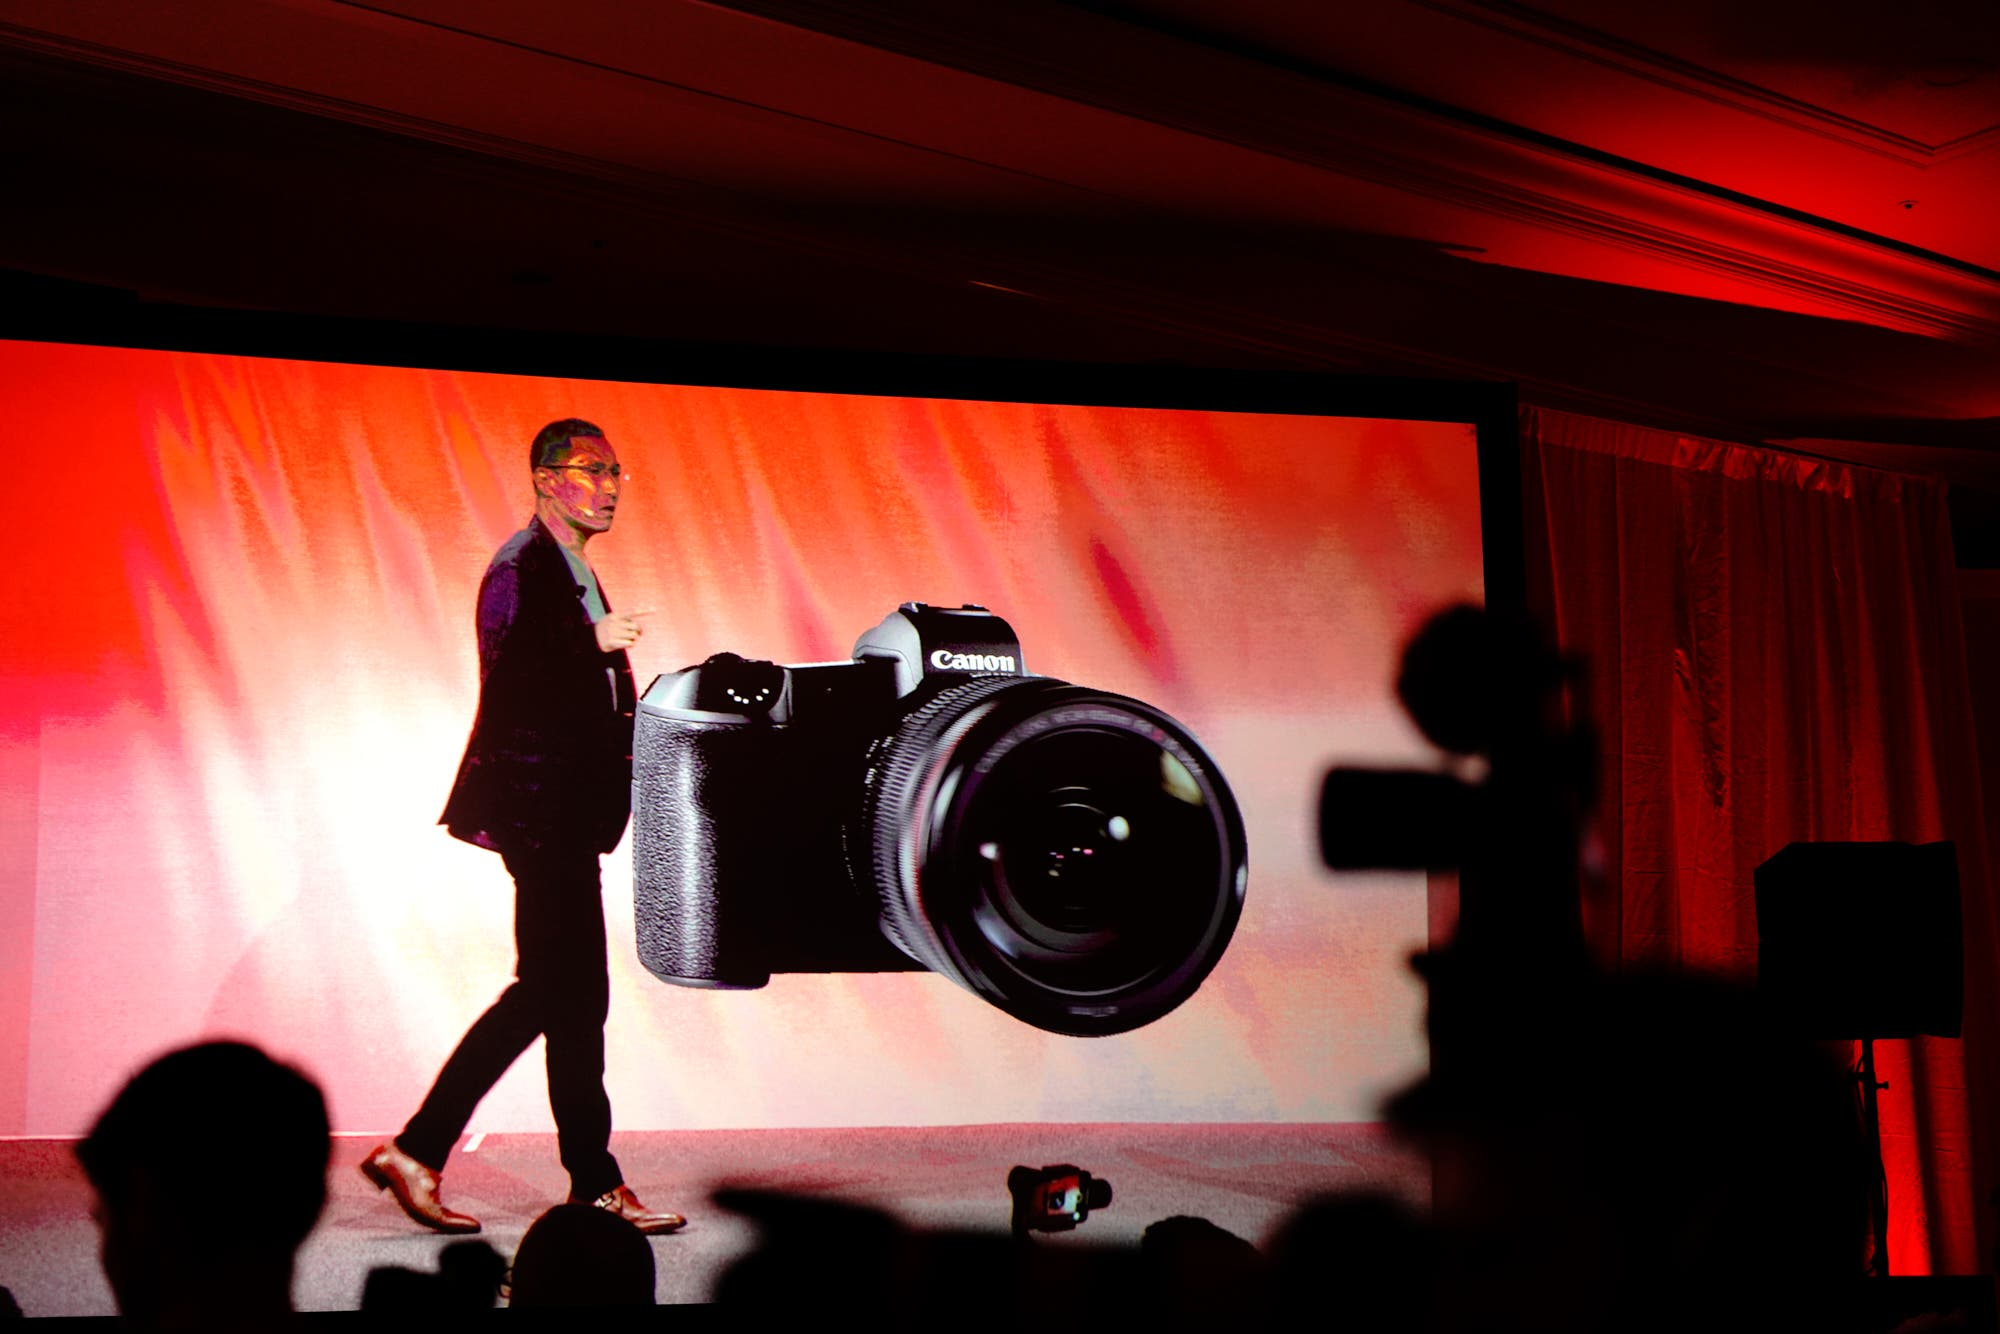 The New Canon EOS R is Probably Going to Be The Next Thing You Argue About With Sony Fanboys